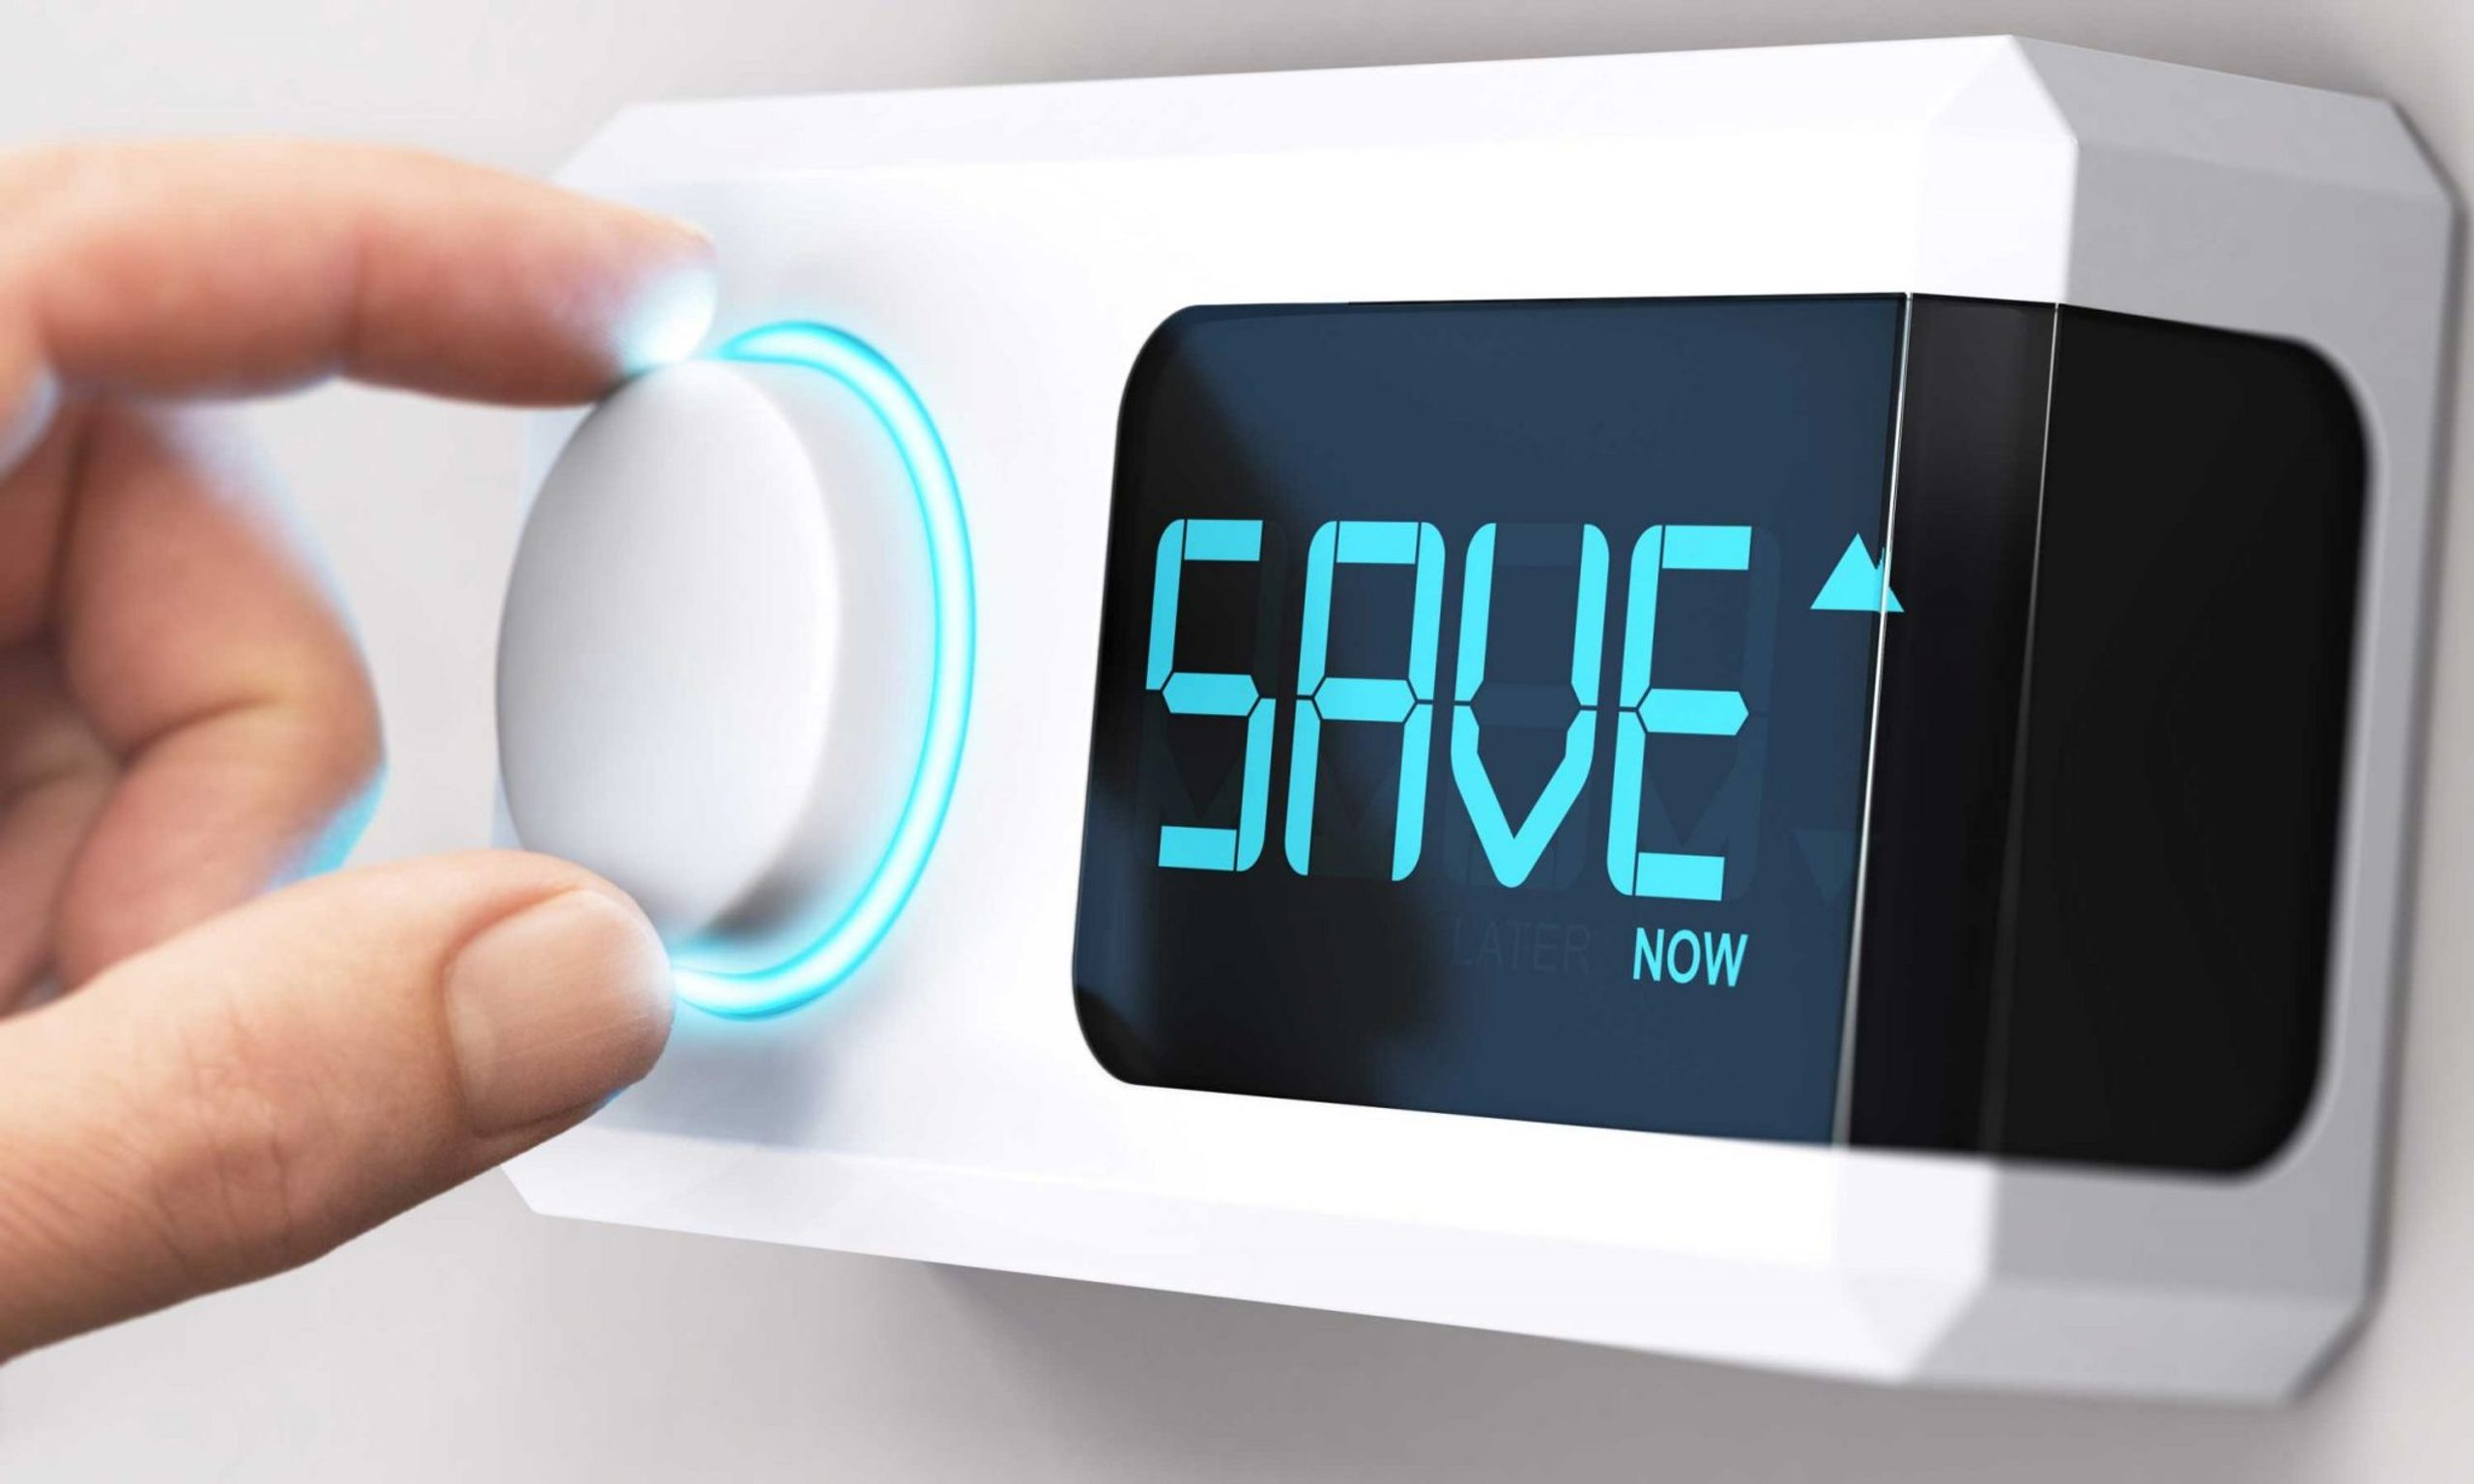 smart thermostat saving money and energy